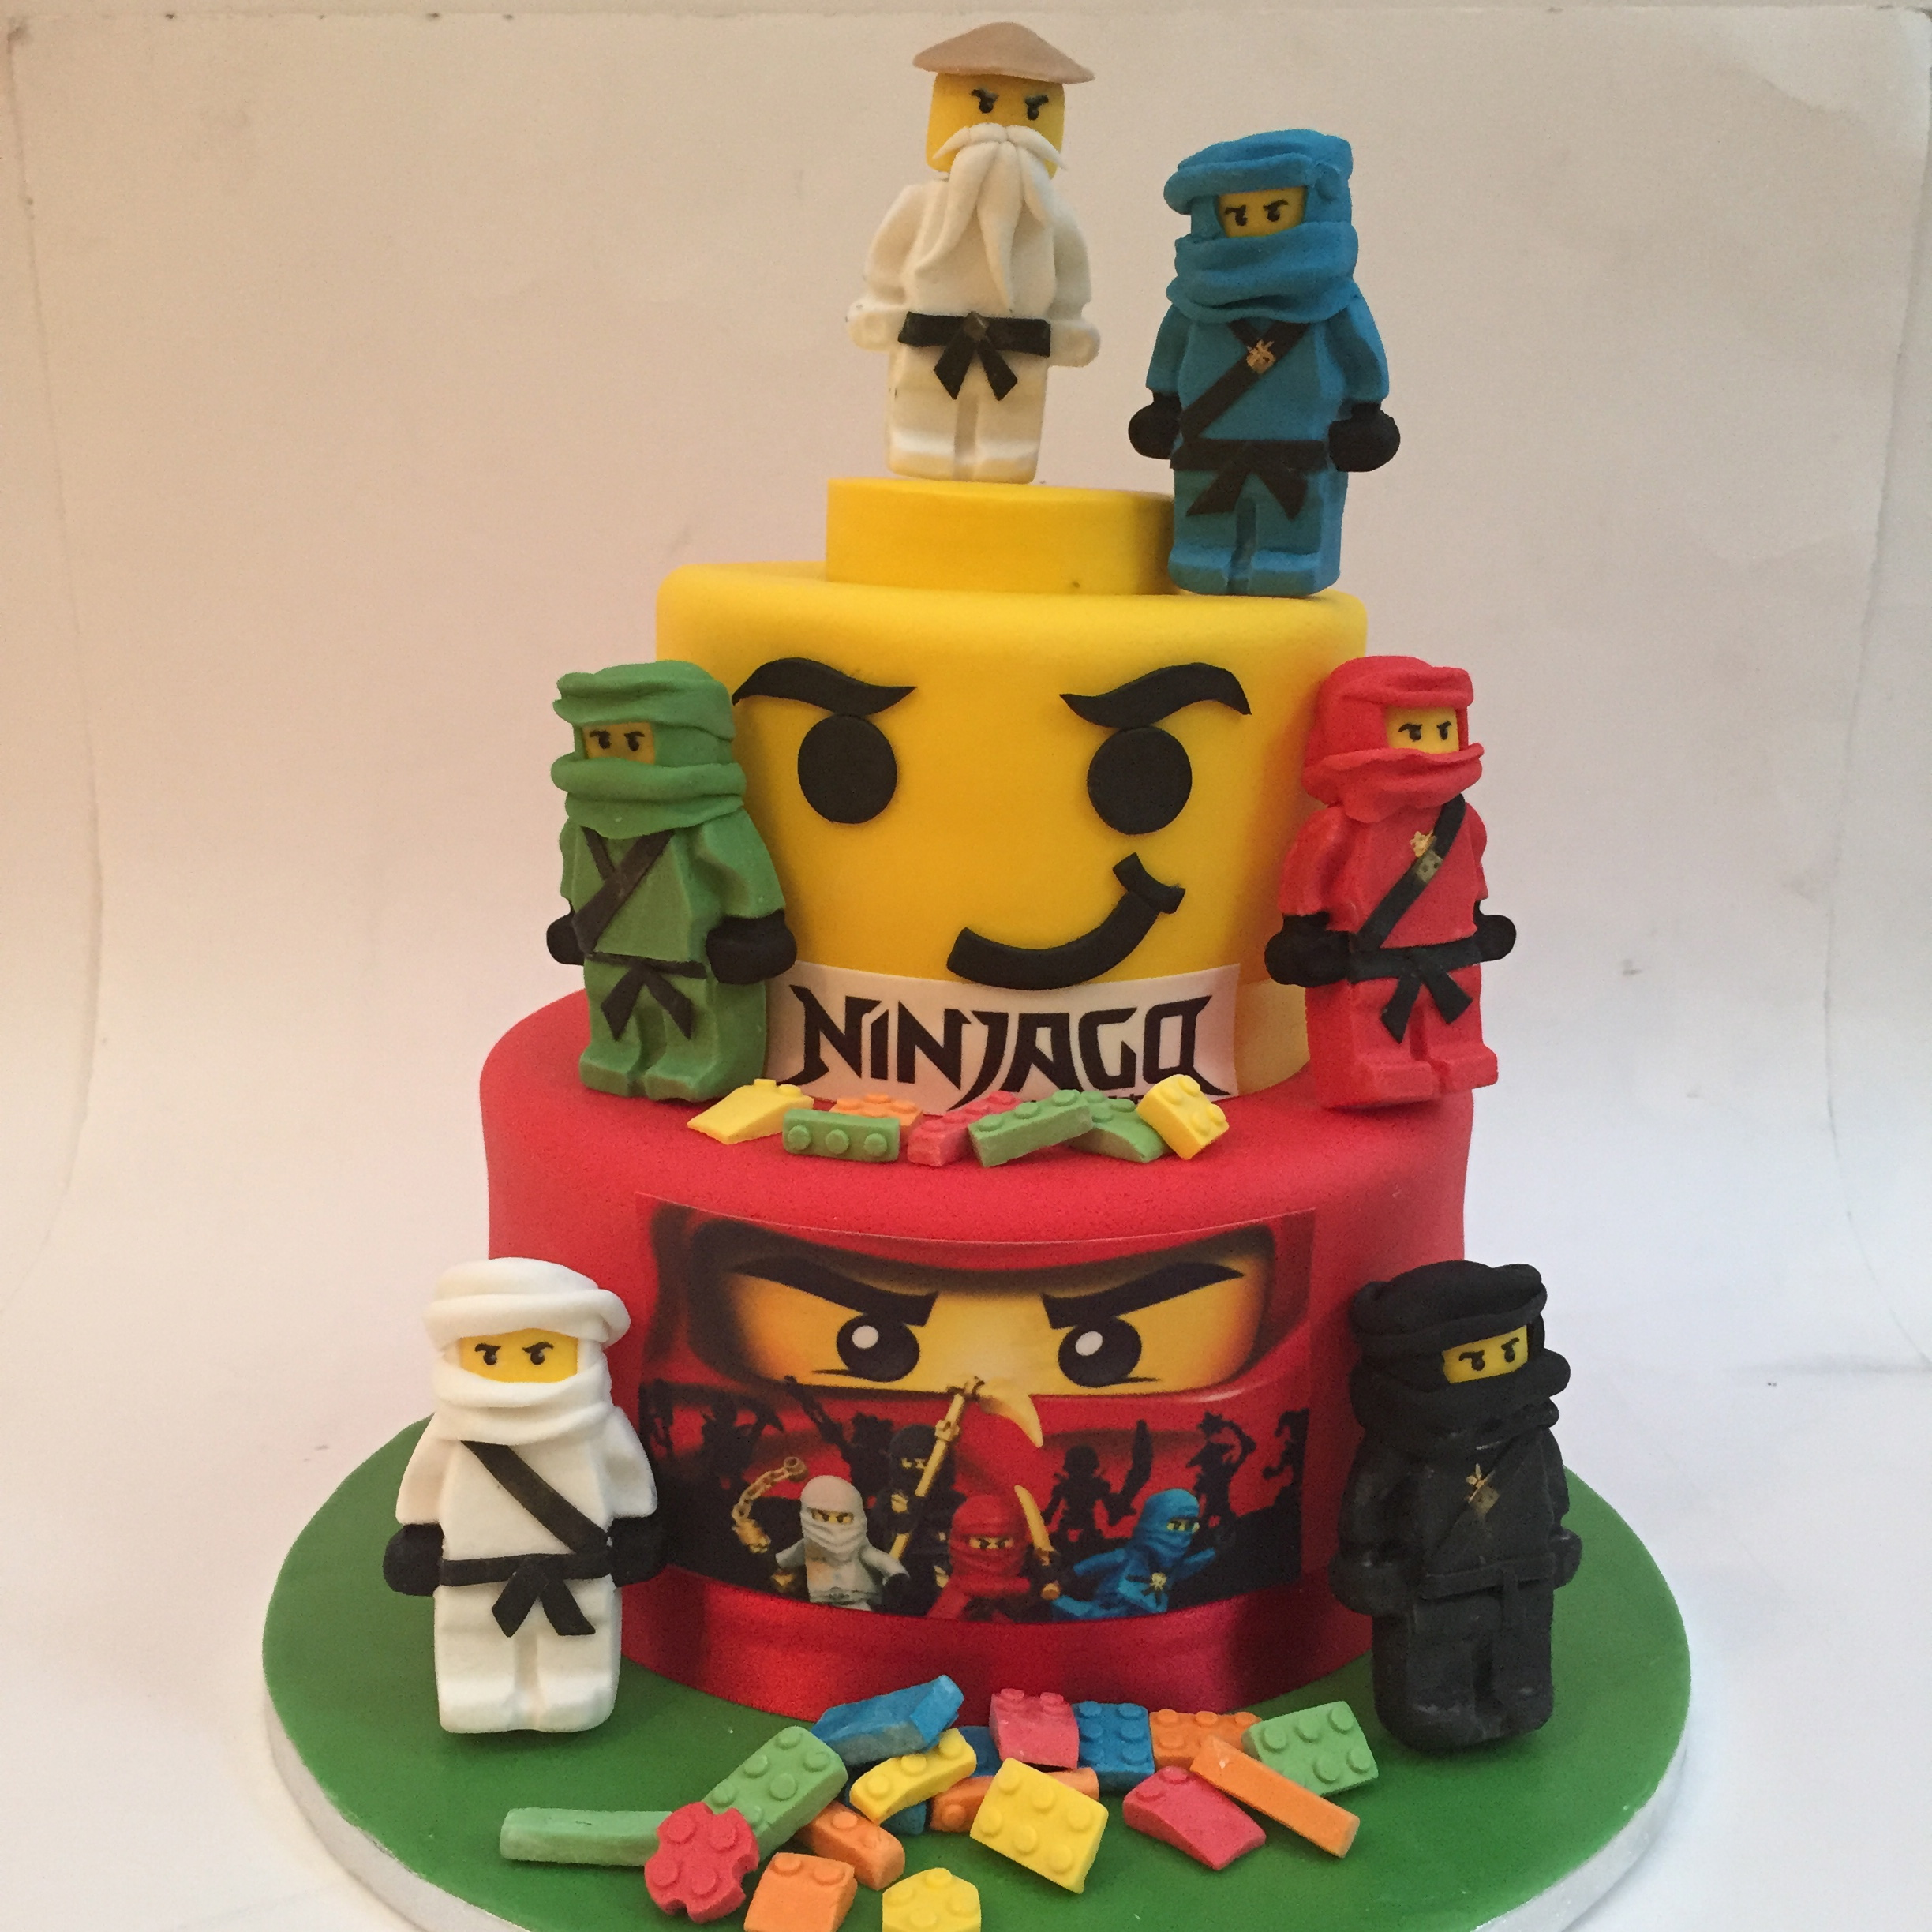 Lego Birthday Cake London Etoile Bakery